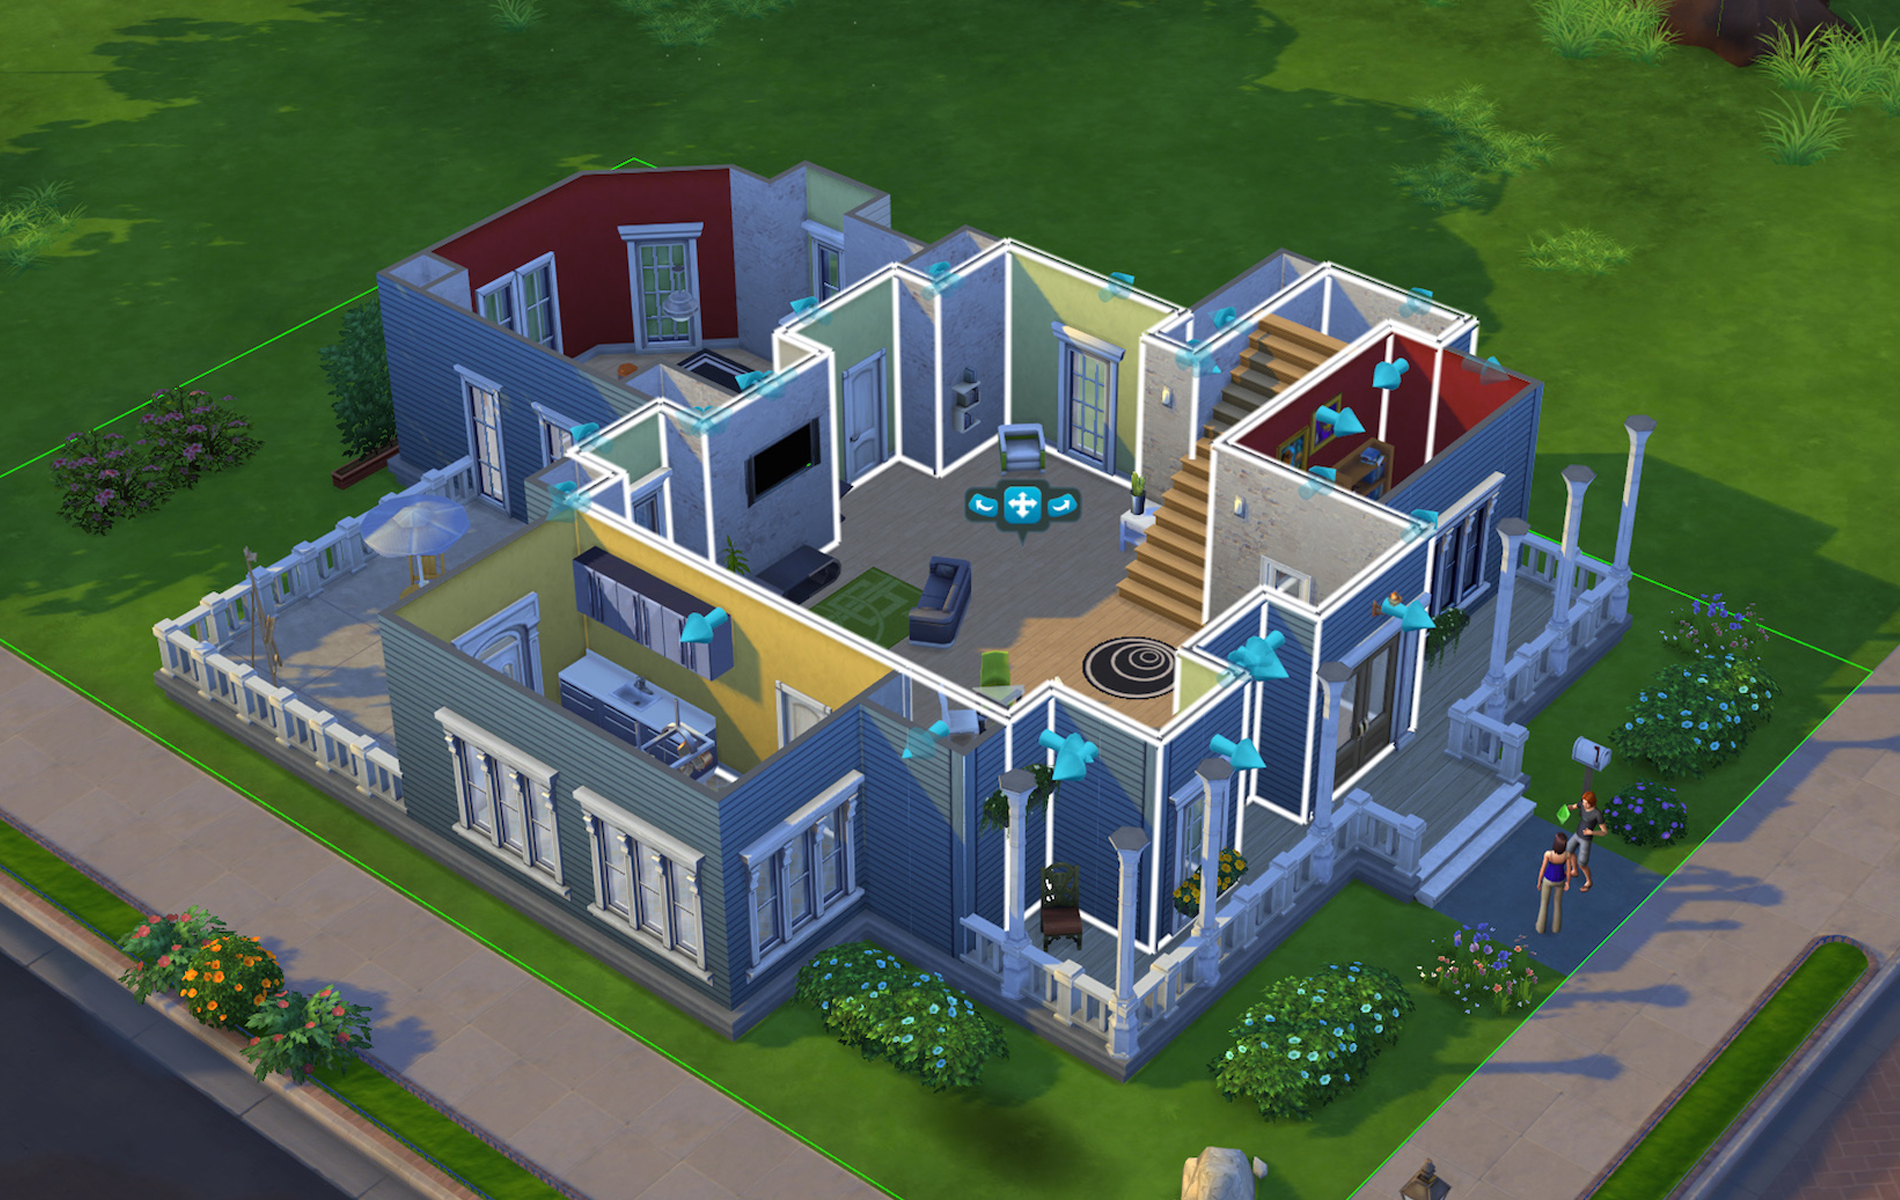 Sims 4 Build Mode Video Games Home Design VIE Magazine